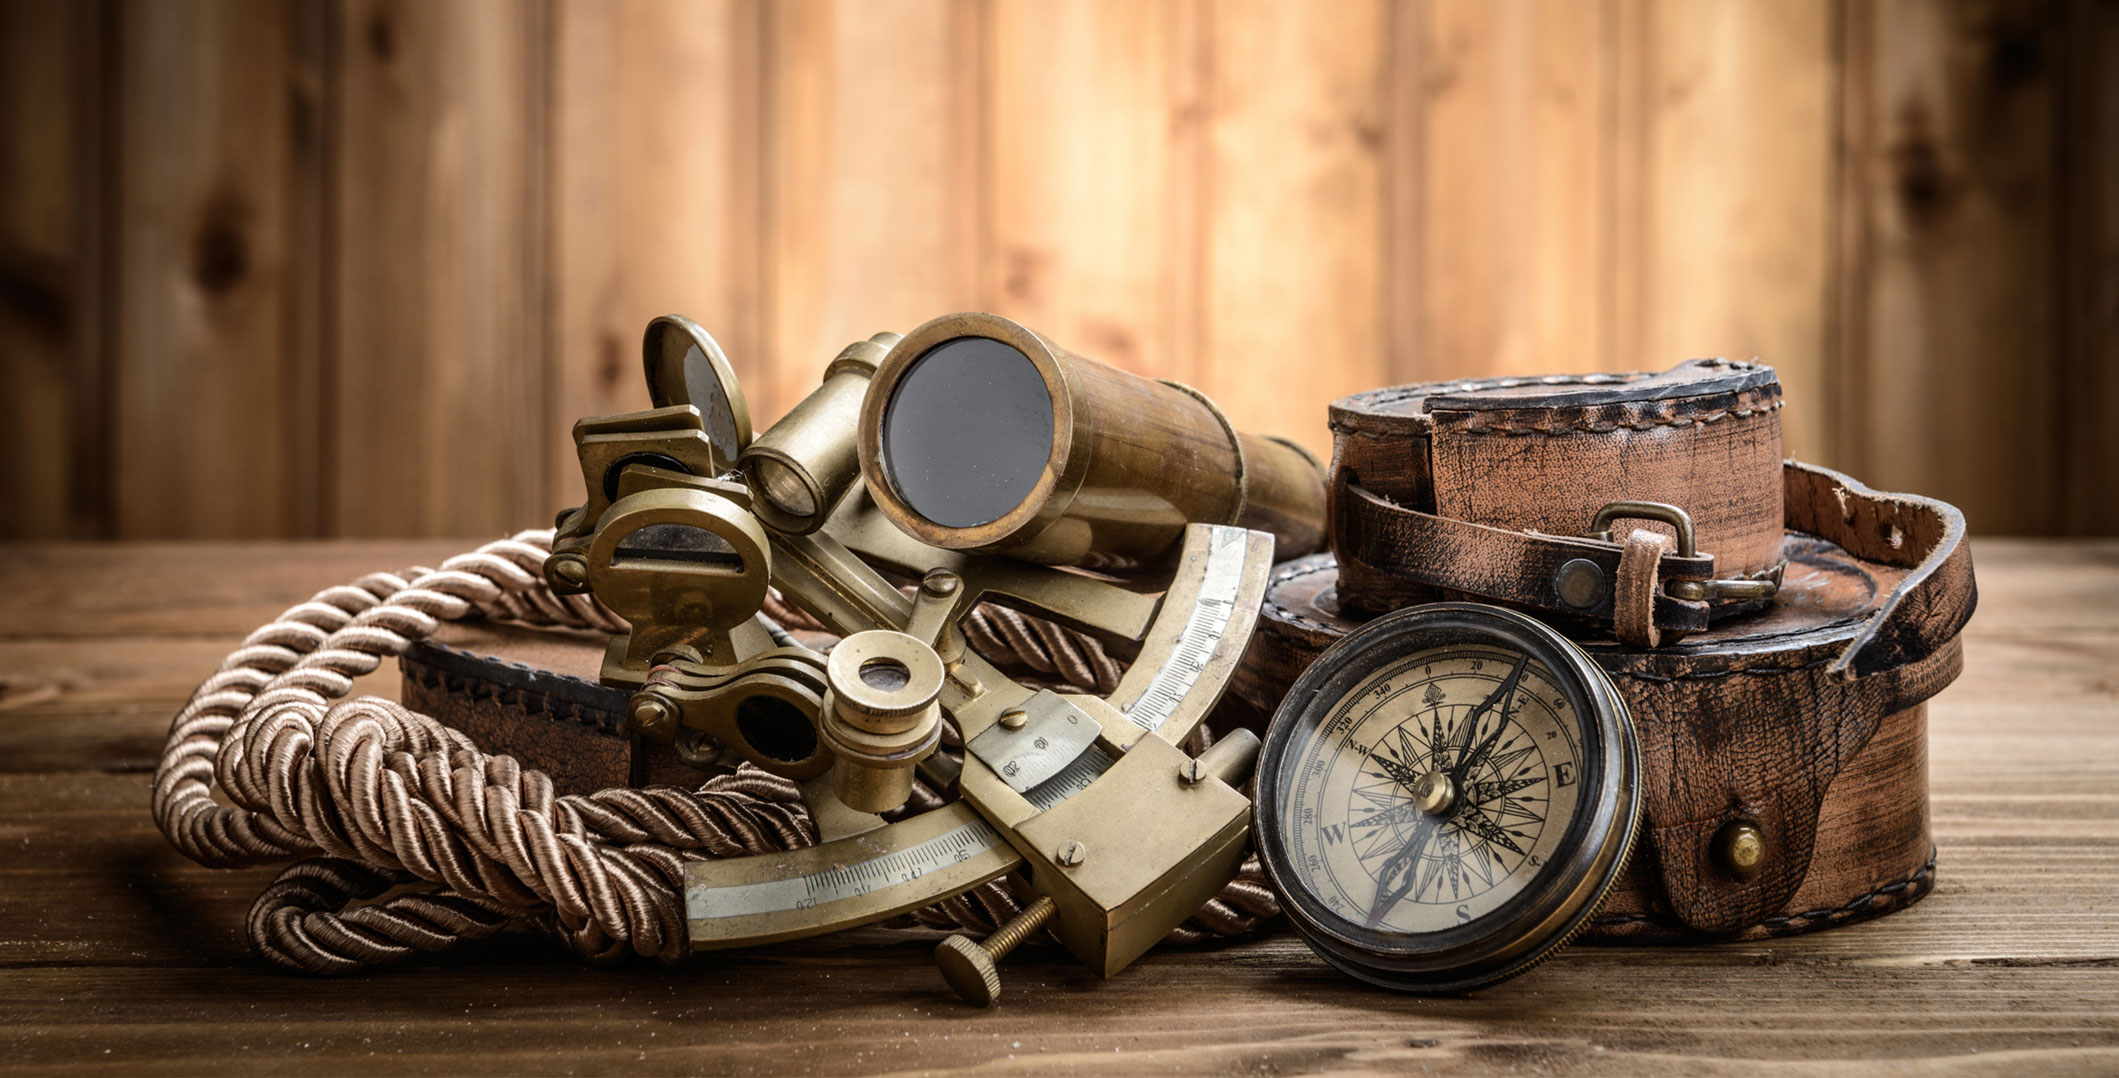 Sextant Compass and Spyglass